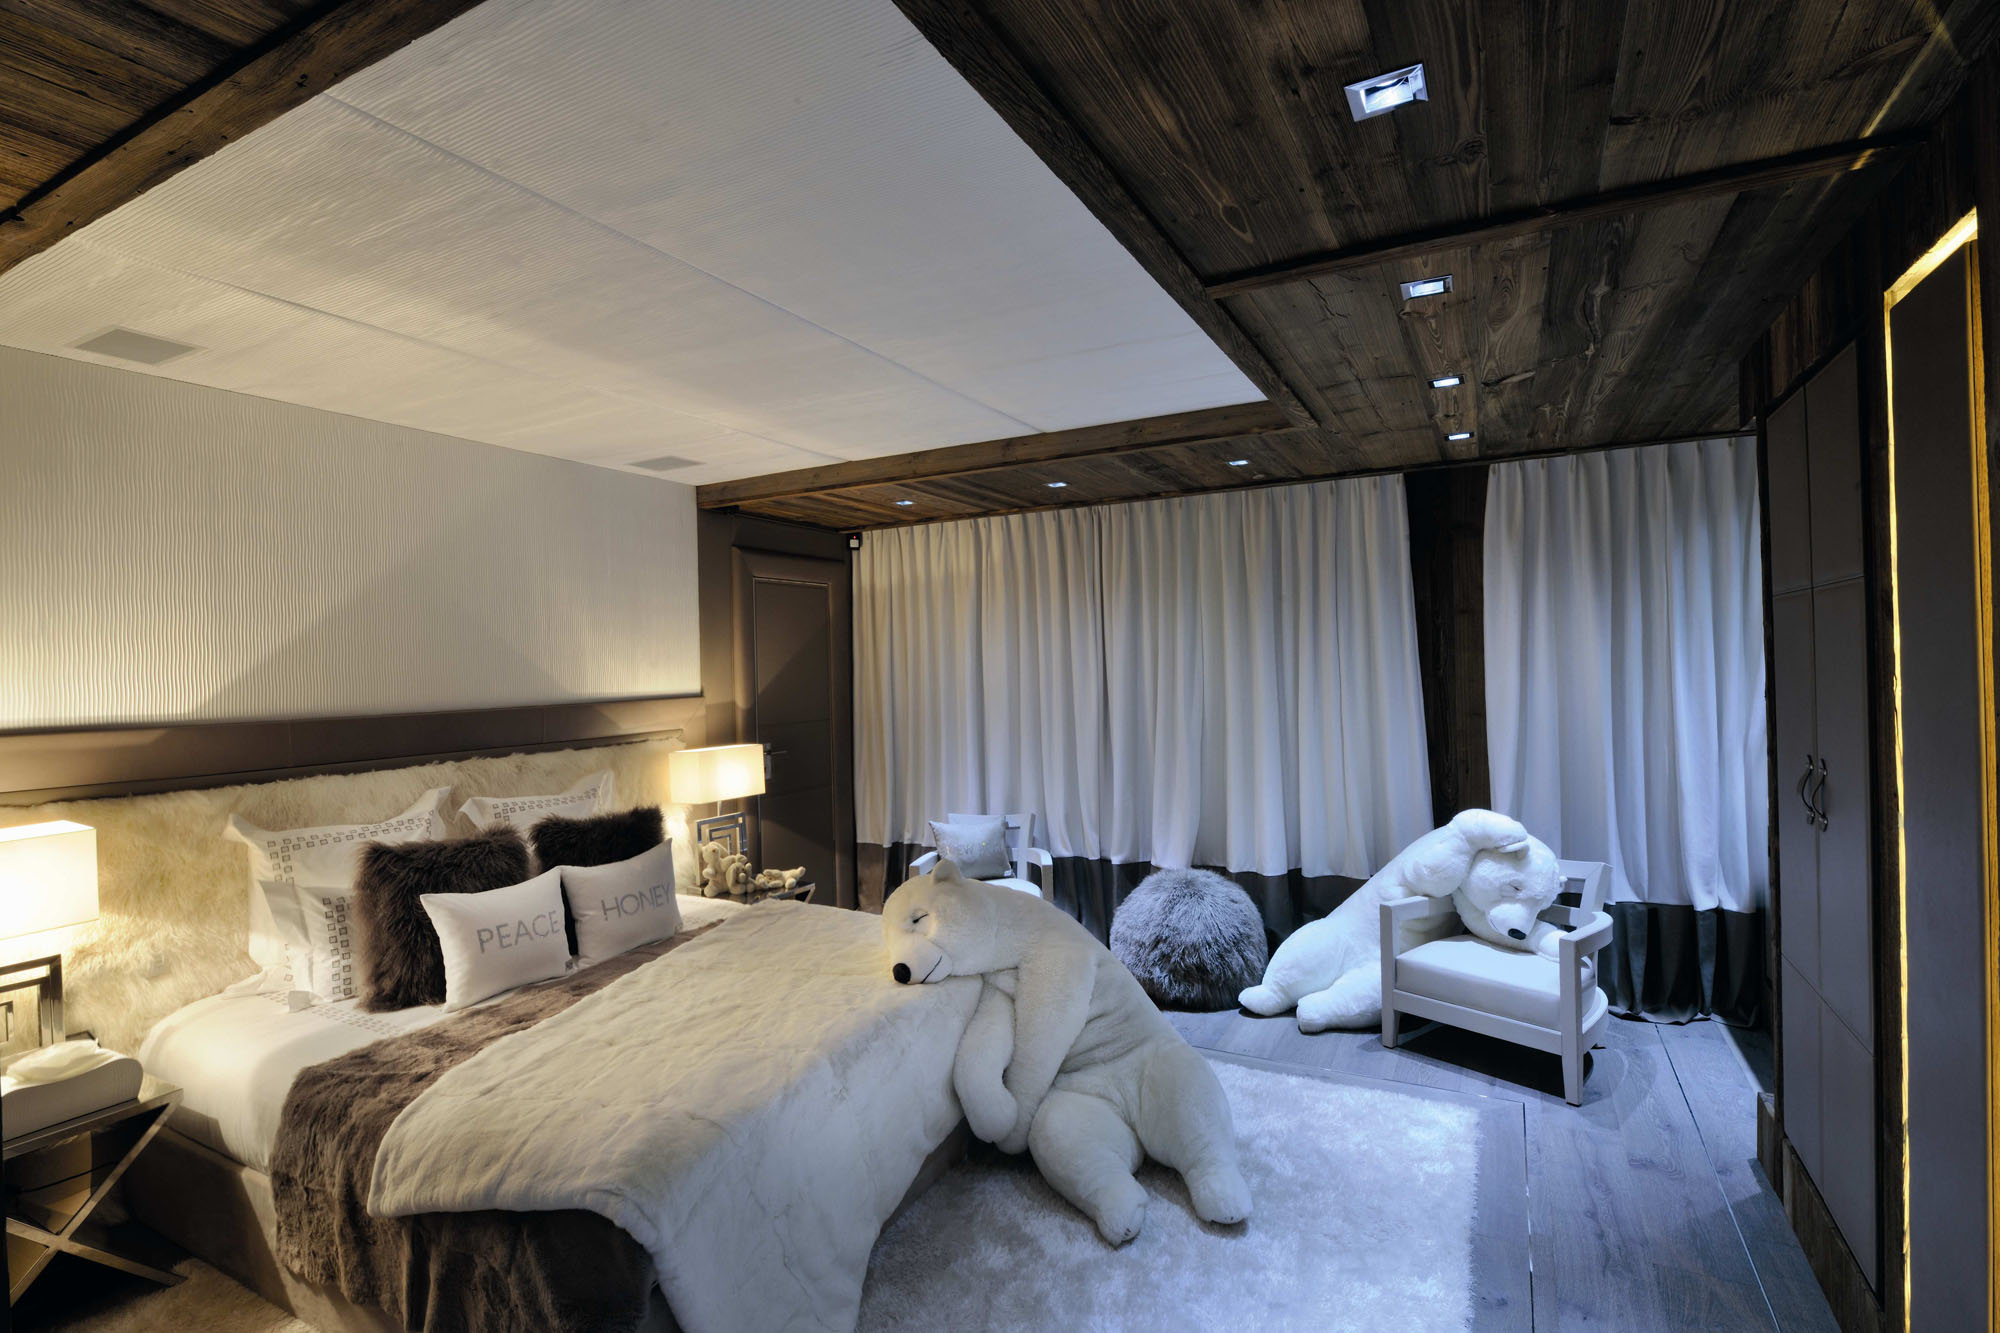 Pure Snow Top 10 Most Amazing Places To Stay In The Snow - Chalet Brickell 1.jpg